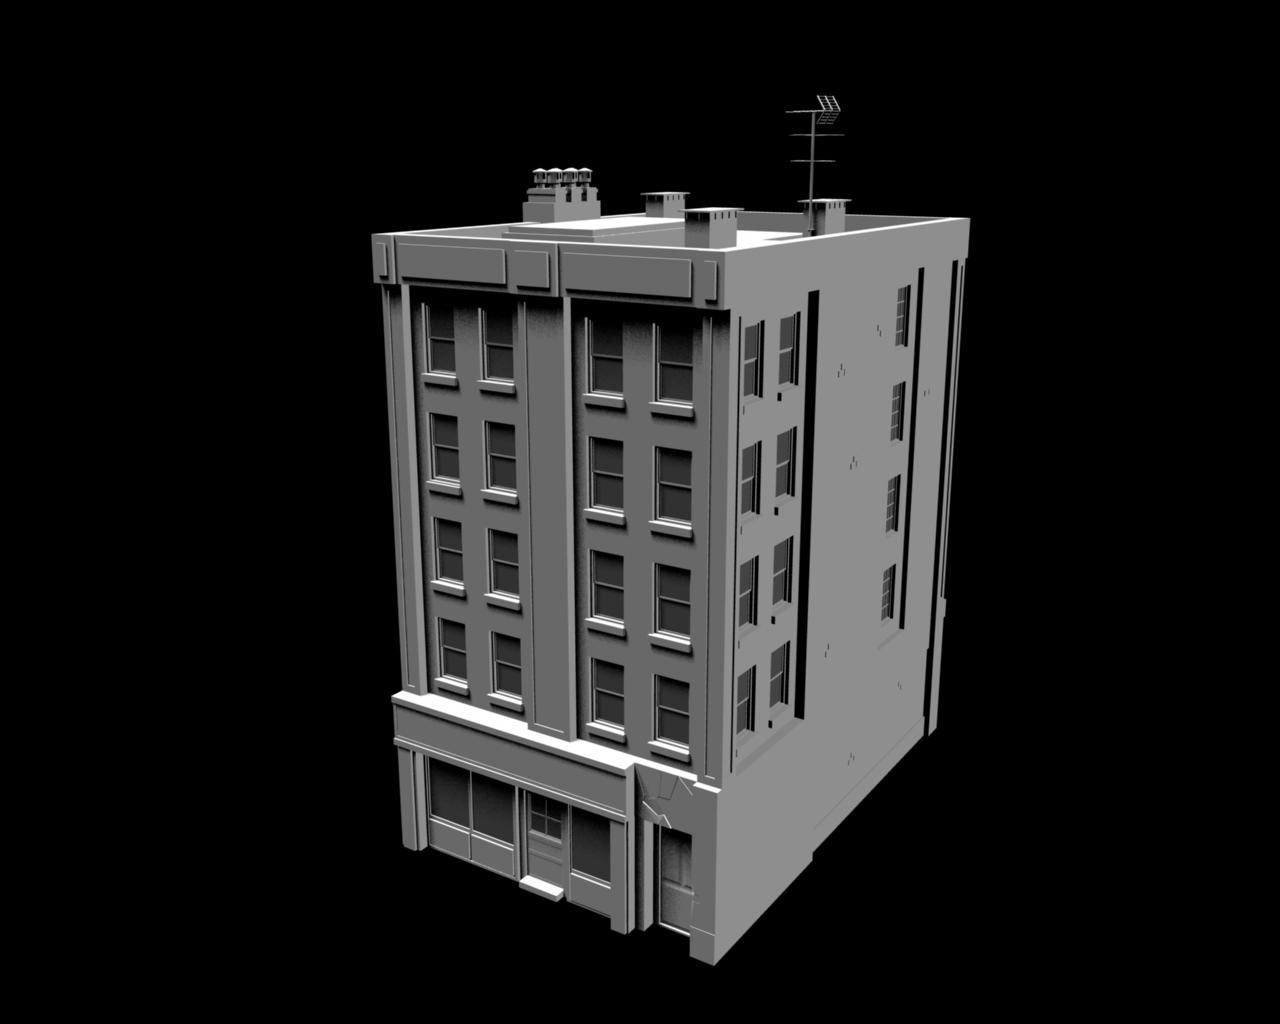 seventh style building front image sacrator mod for unreal